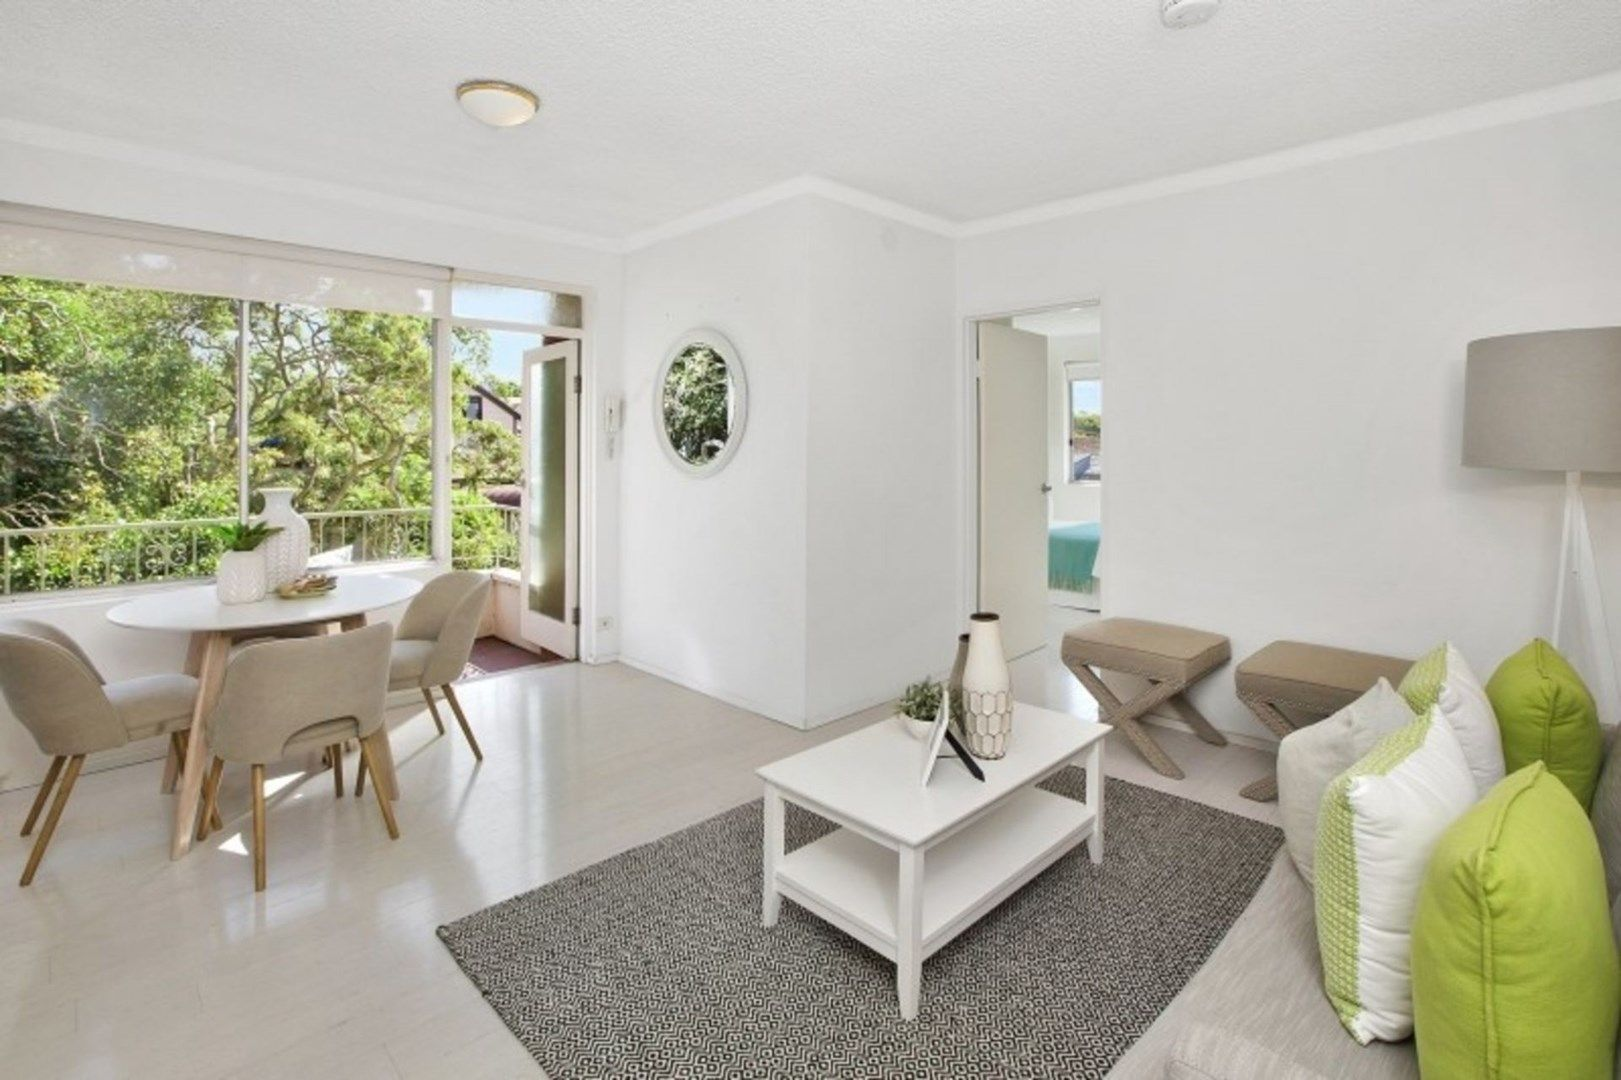 7/1 Morden St, Cammeray NSW 2062, Image 0